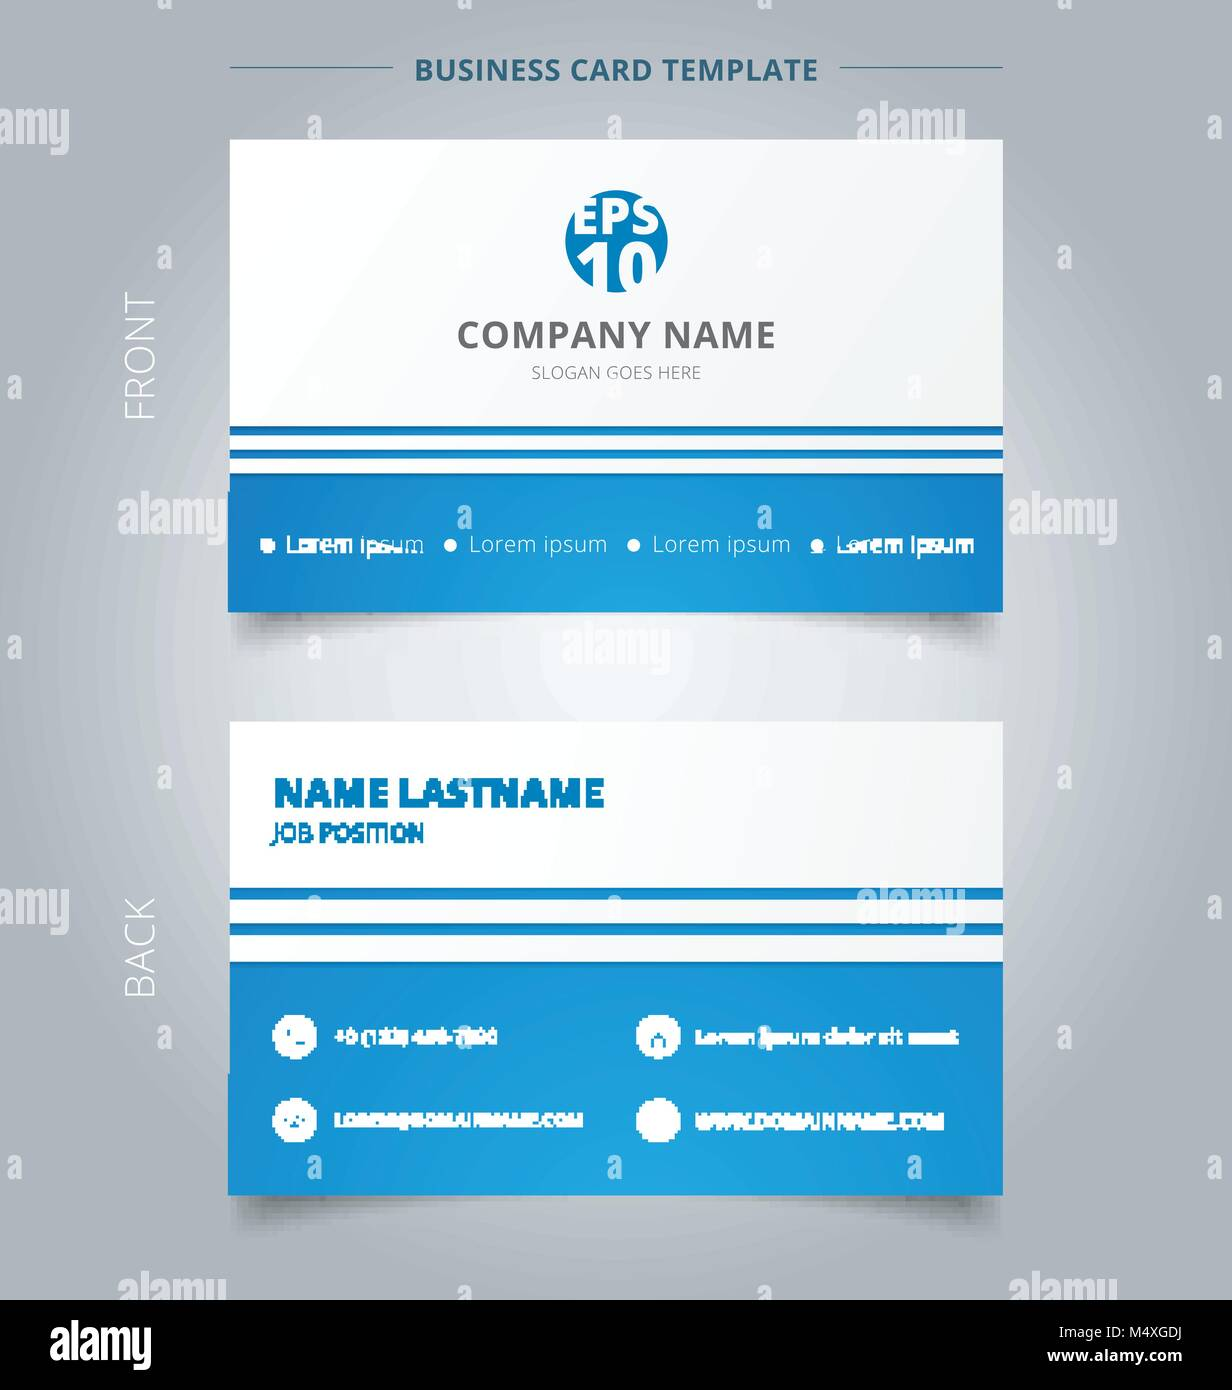 Business Line Card Template from c8.alamy.com